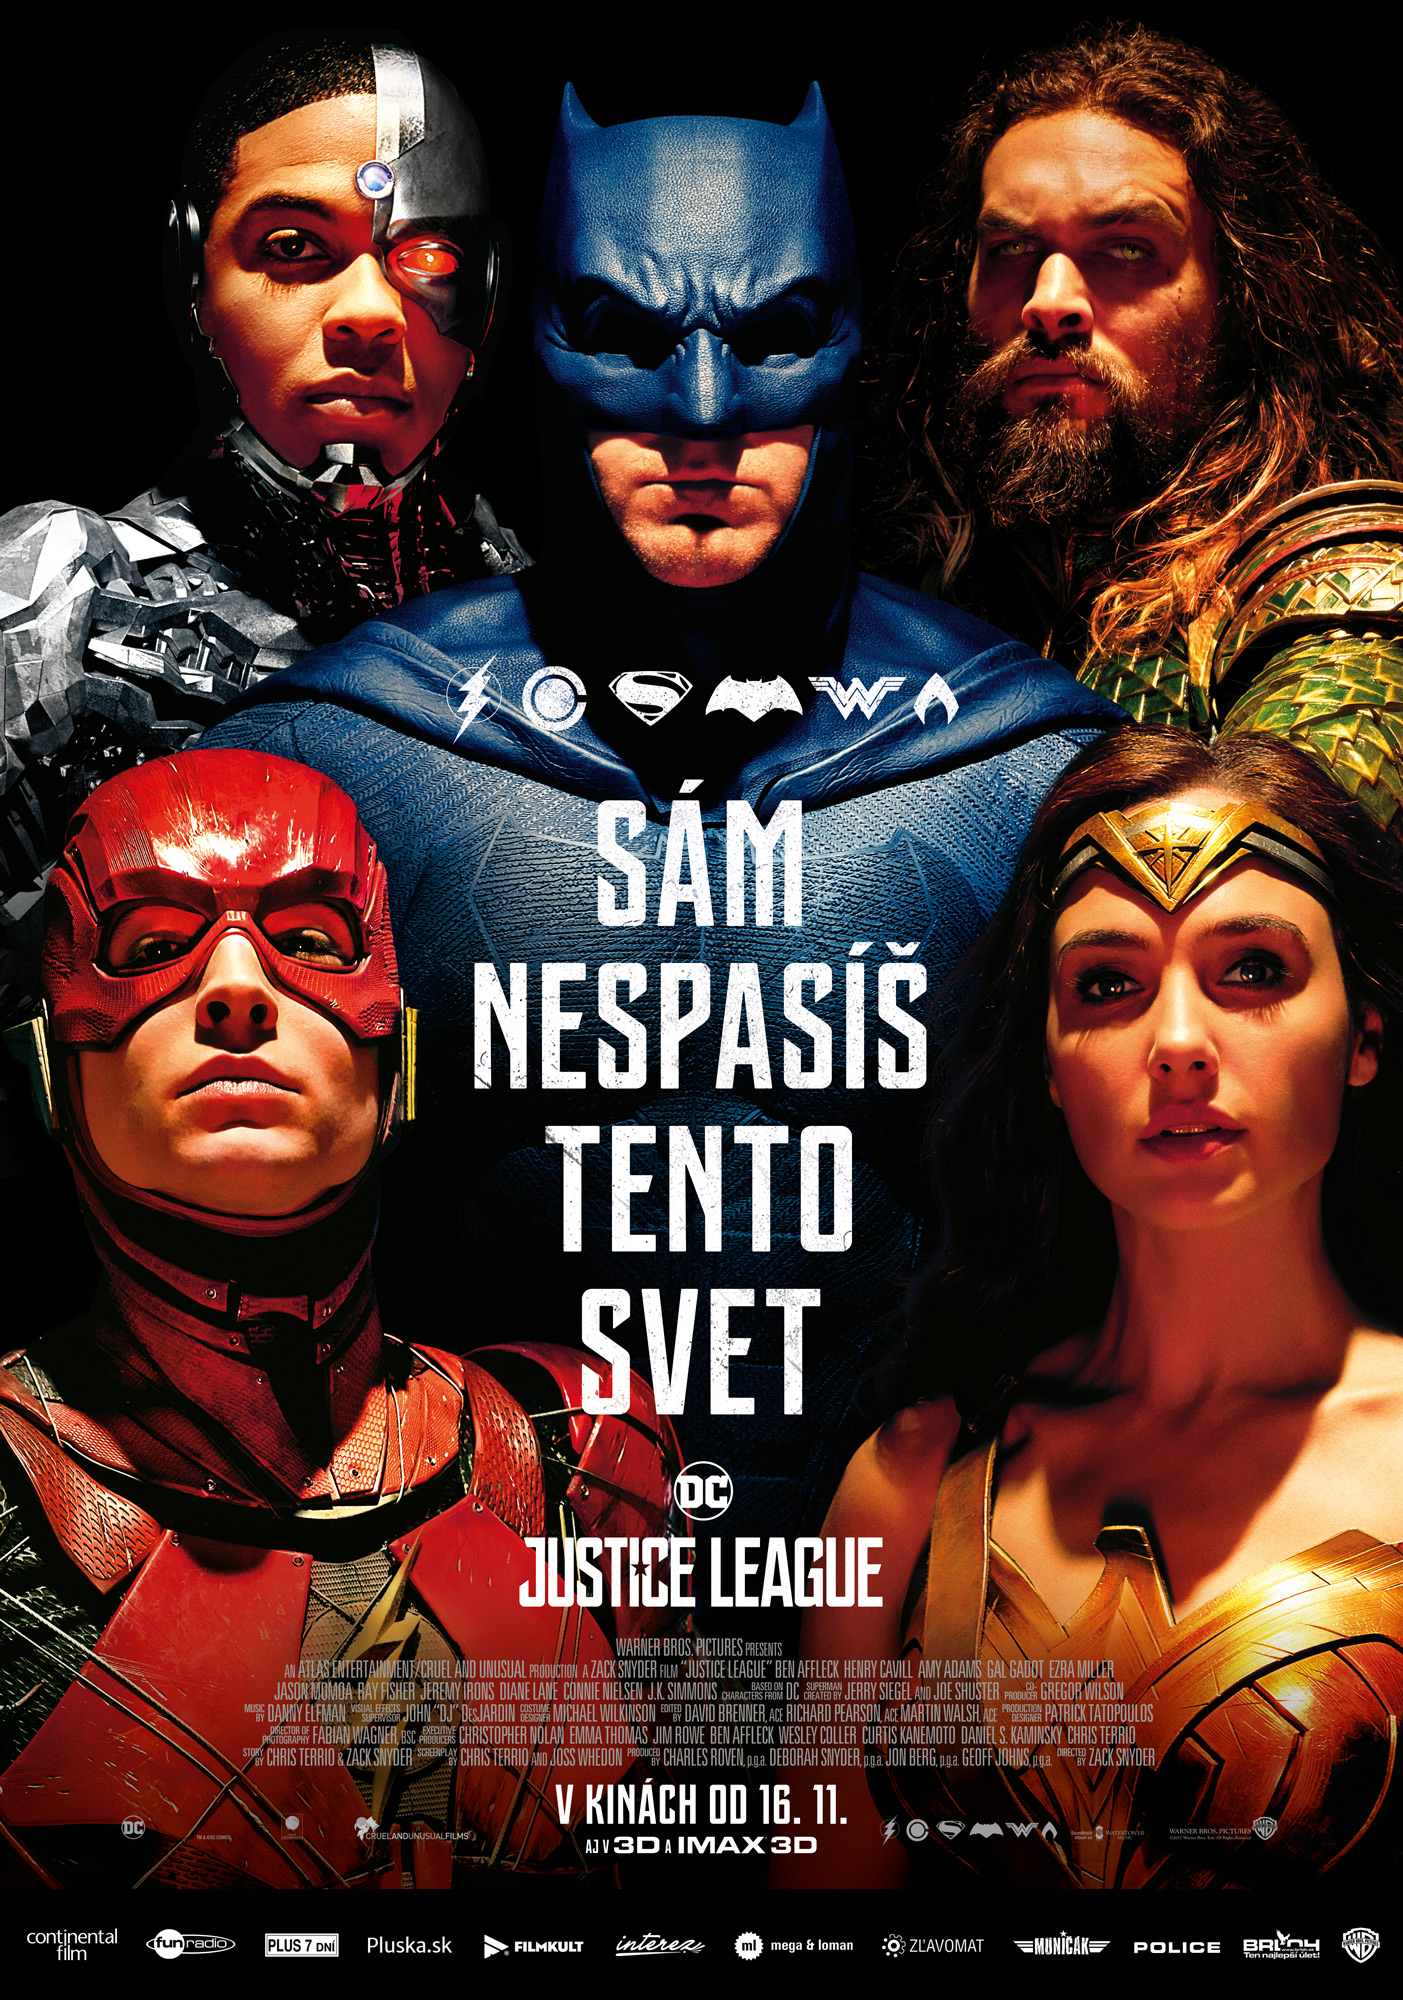 http://www.continental-film.sk/images/stories/postery/justice-league-poster.jpg